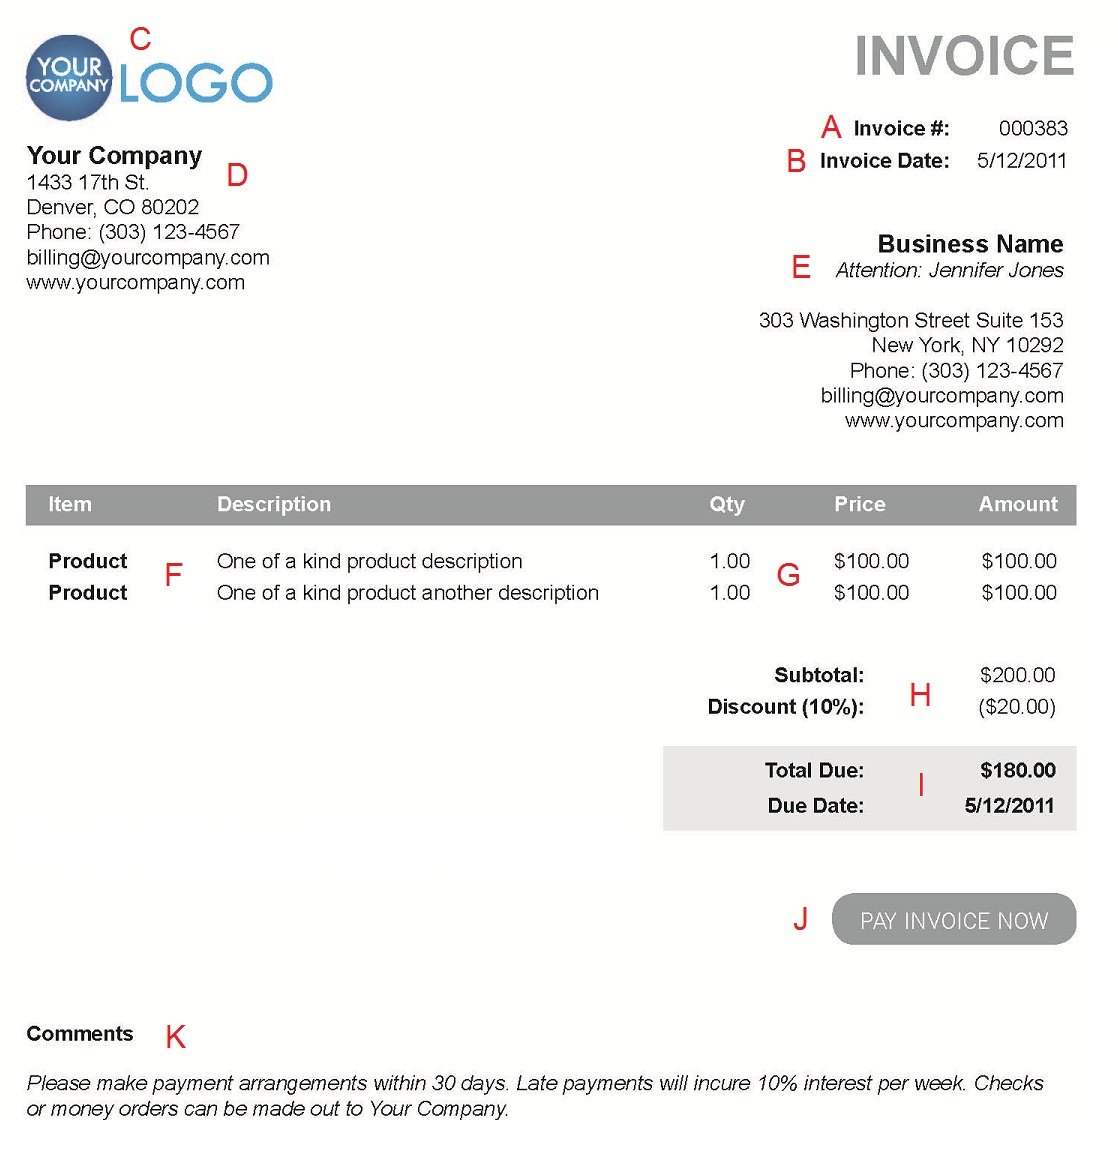 Opposenewapstandardsus  Mesmerizing The  Different Sections Of An Electronic Payment Invoice With Outstanding A  With Alluring Small Business Invoicing Software Also Invoice For Billing In Addition Invoice Accounting And Commercial Invoices As Well As Printable Invoices Online Additionally Printable Invoice Pdf From Paysimplecom With Opposenewapstandardsus  Outstanding The  Different Sections Of An Electronic Payment Invoice With Alluring A  And Mesmerizing Small Business Invoicing Software Also Invoice For Billing In Addition Invoice Accounting From Paysimplecom